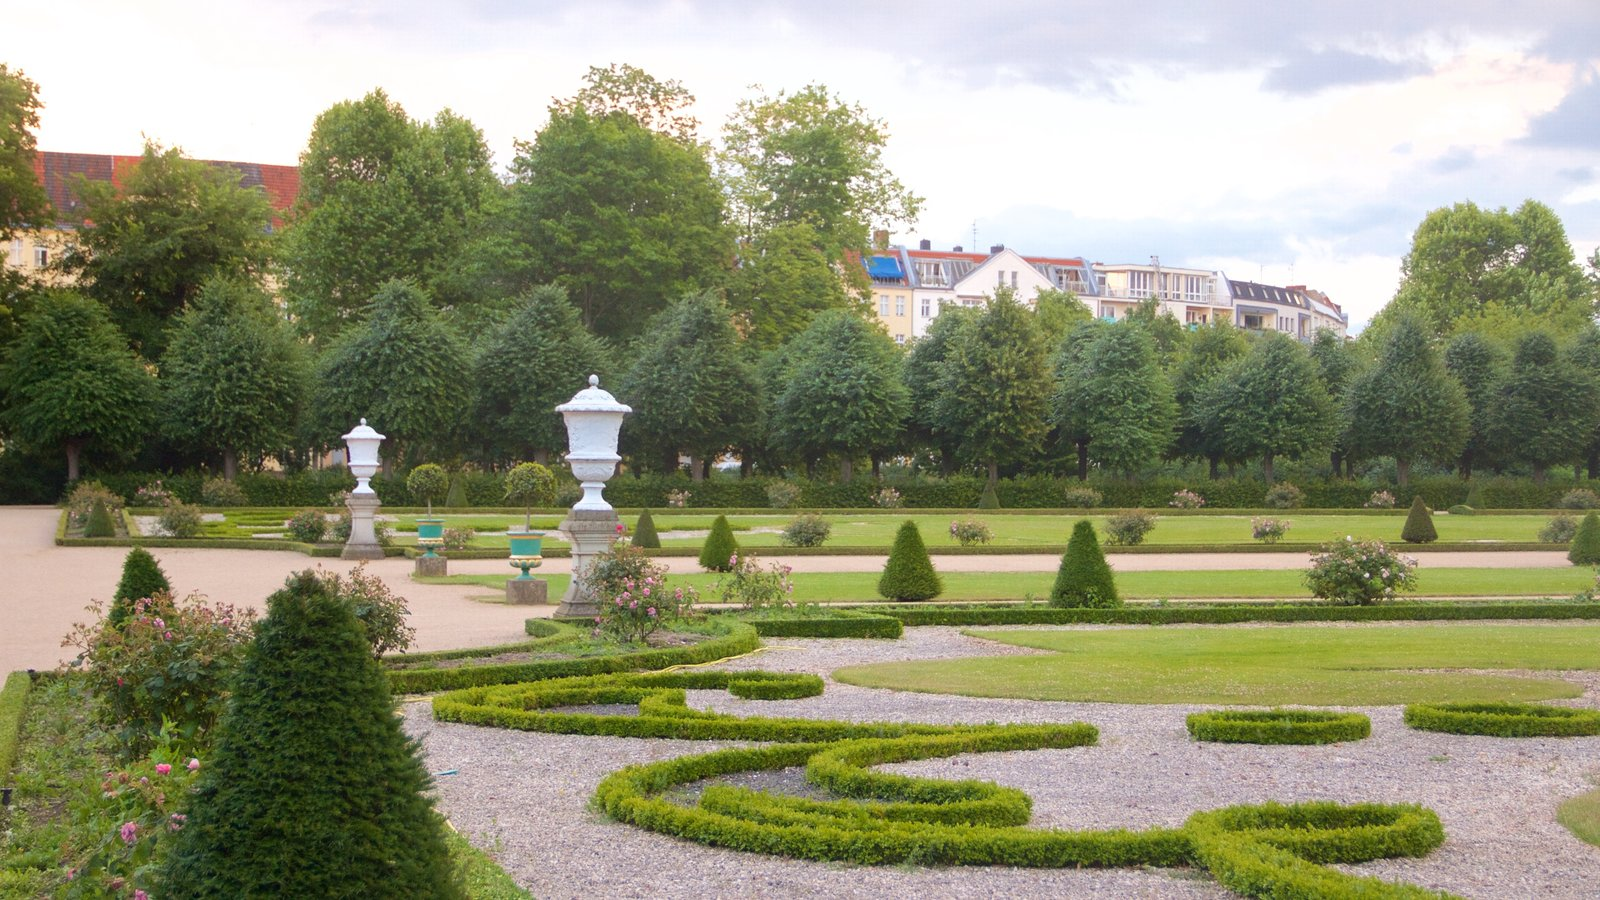 Schloss Charlottenburg which includes heritage elements, a castle and a garden